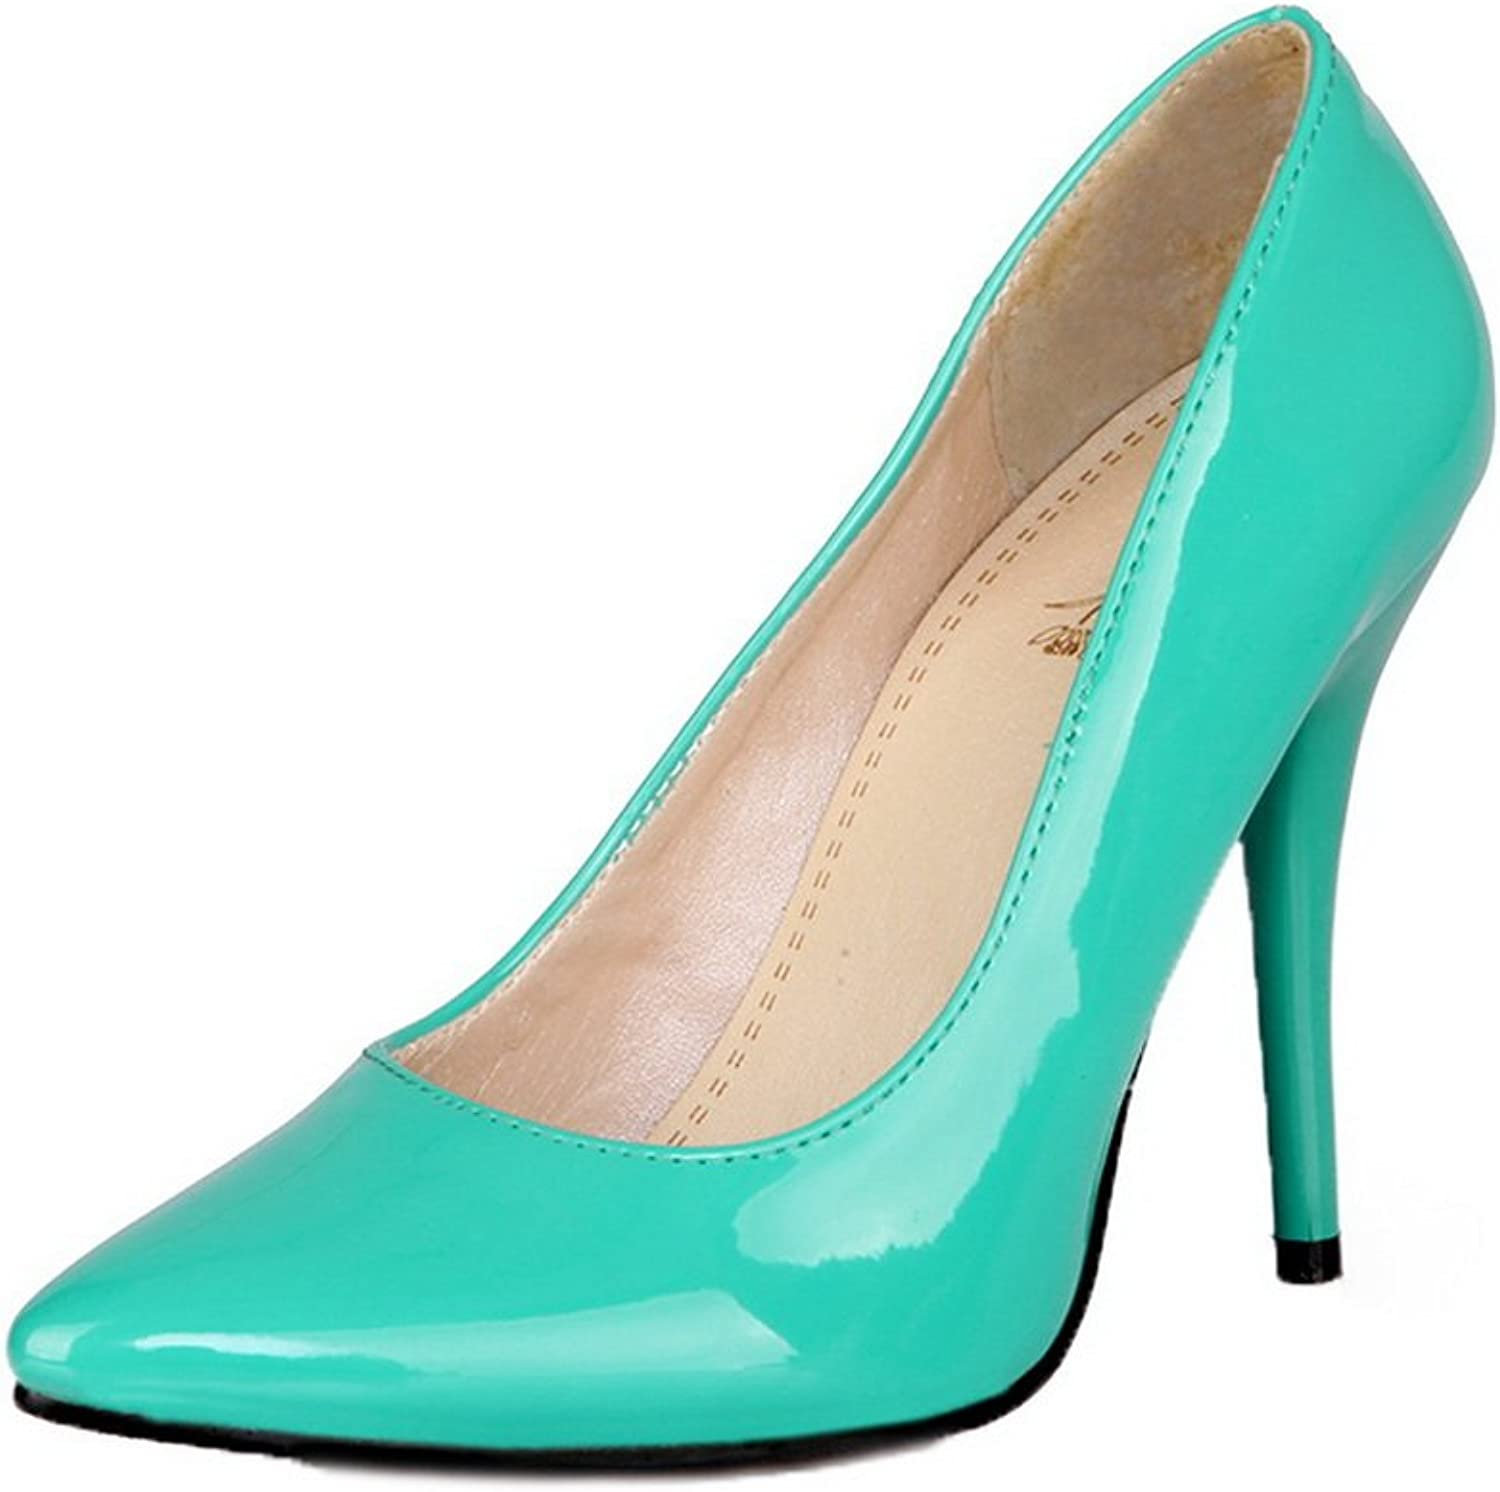 WeenFashion Women's Pull-On Patent Leather Closed-Toe High-Heels Pumps-shoes